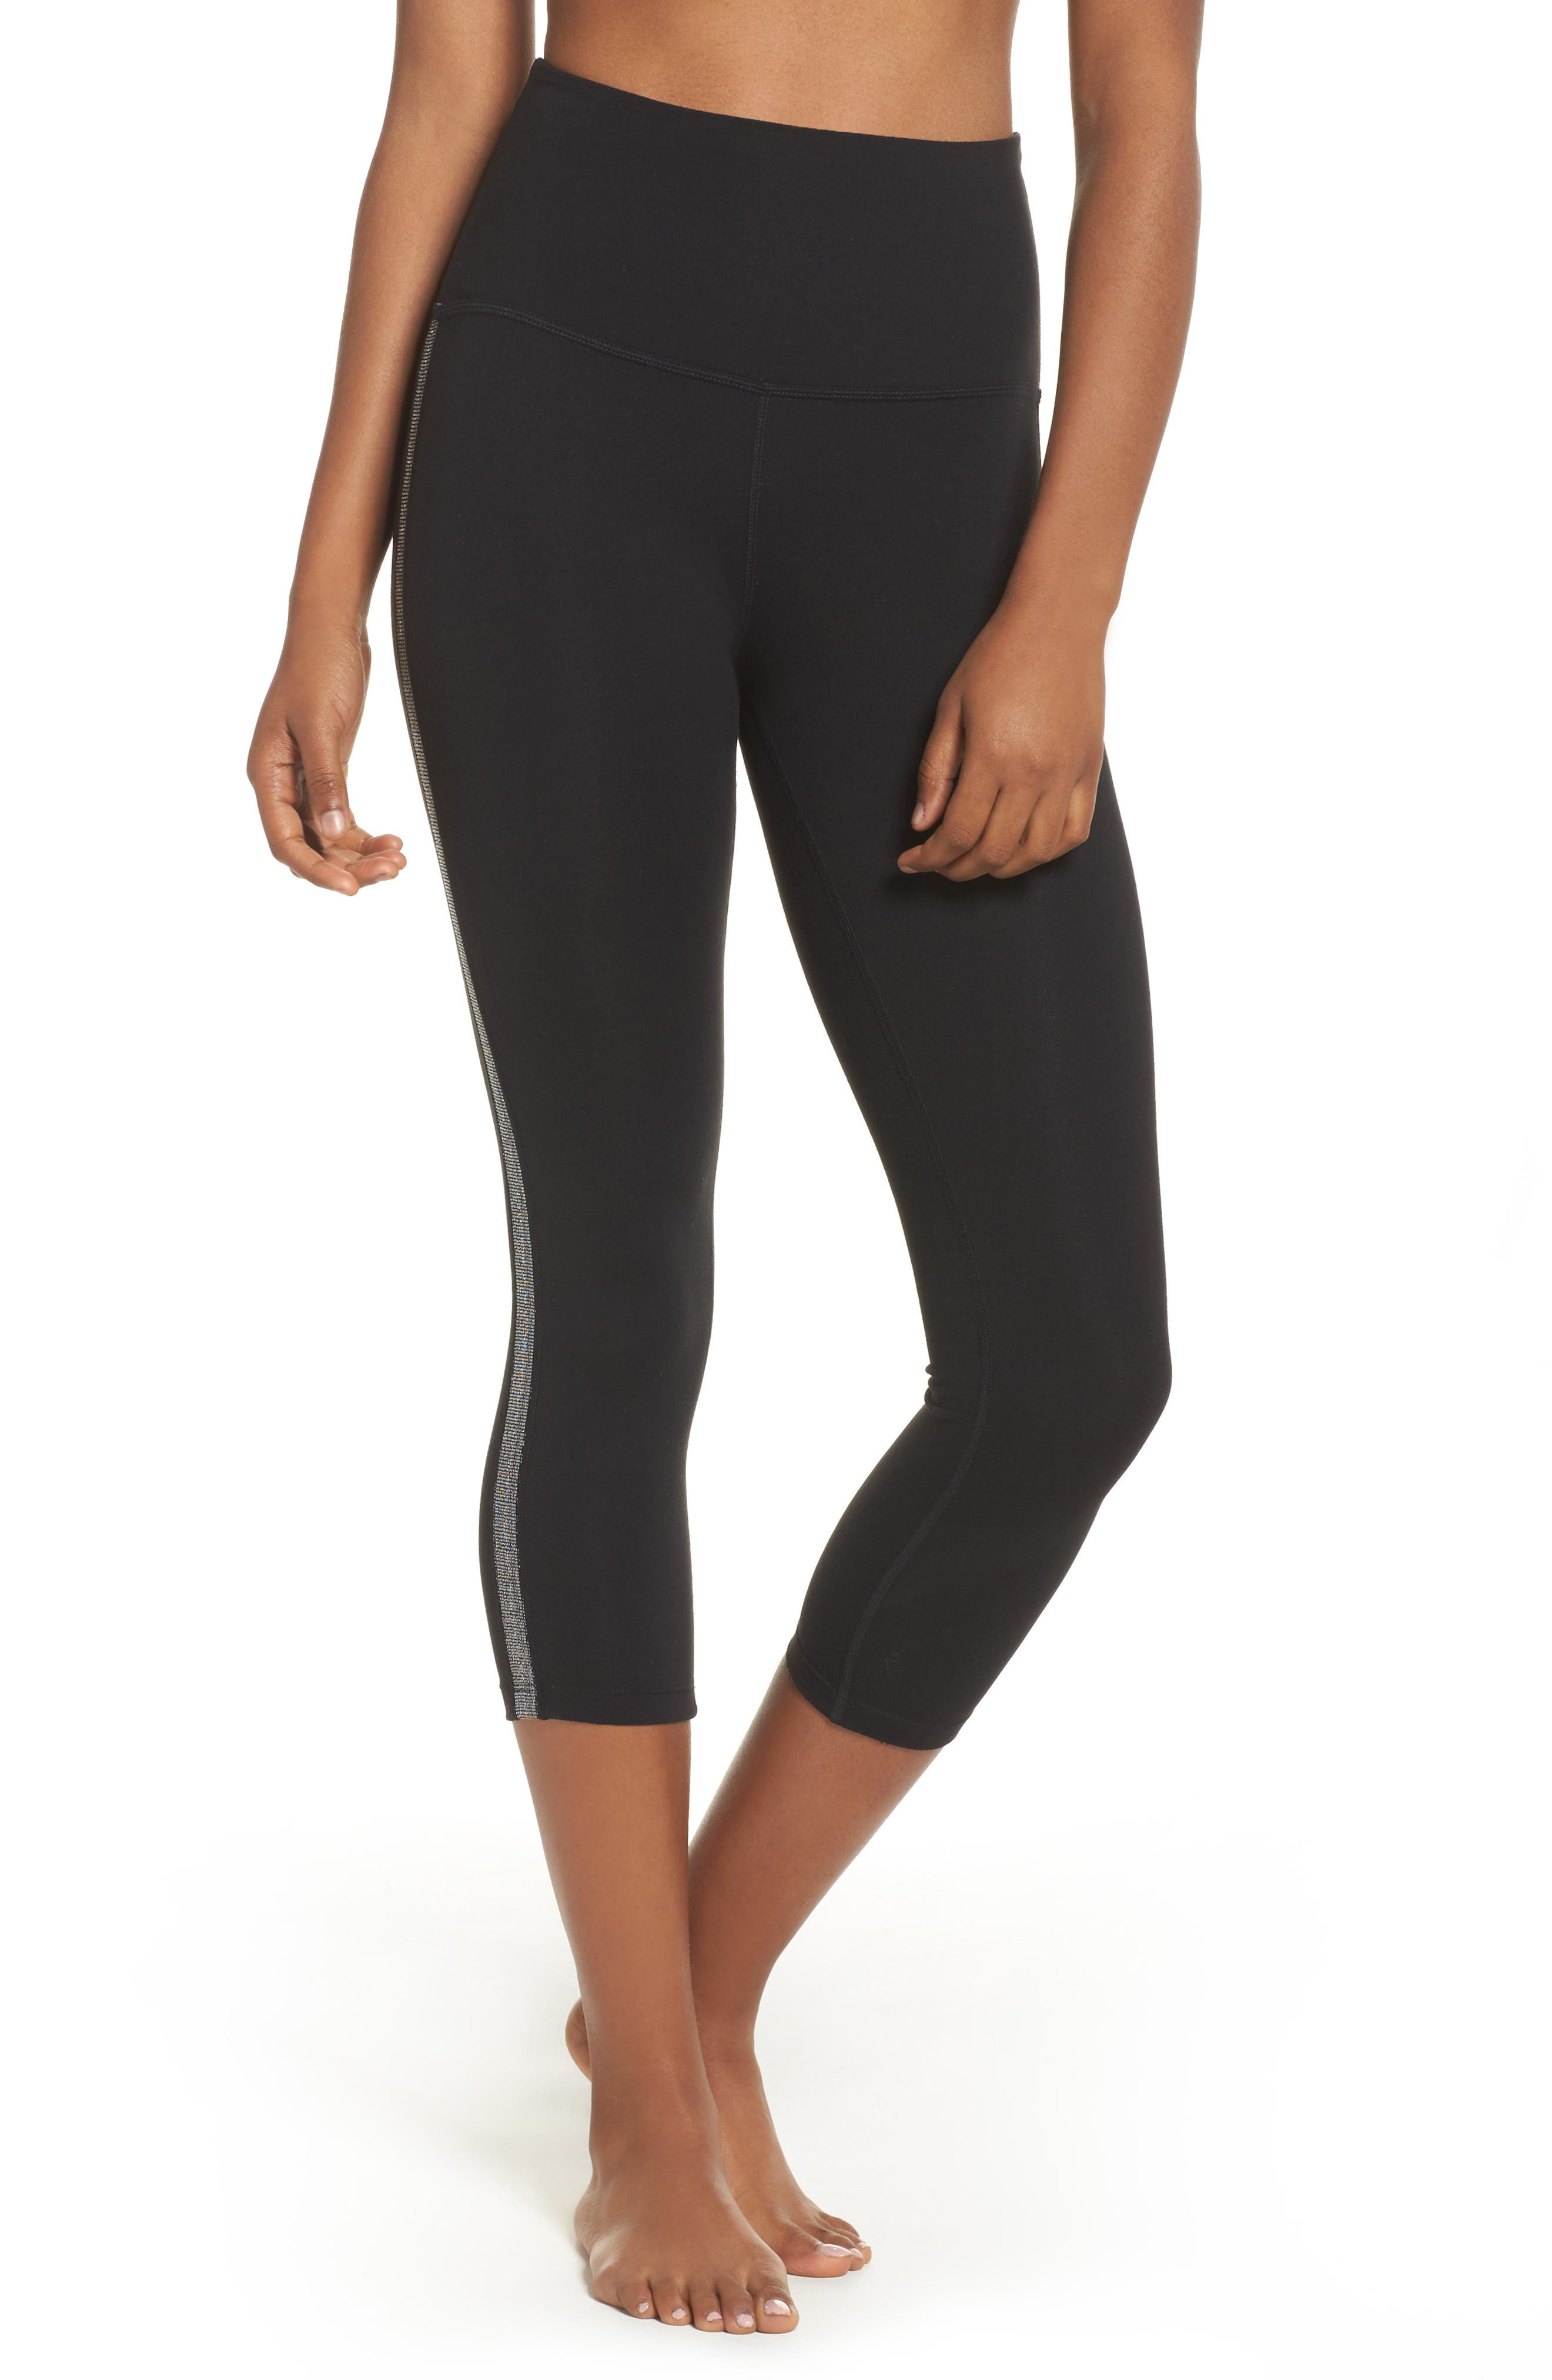 Alternate Image 1 Selected - Beyond Yoga Fit & Trim High Waist Capri Leggings